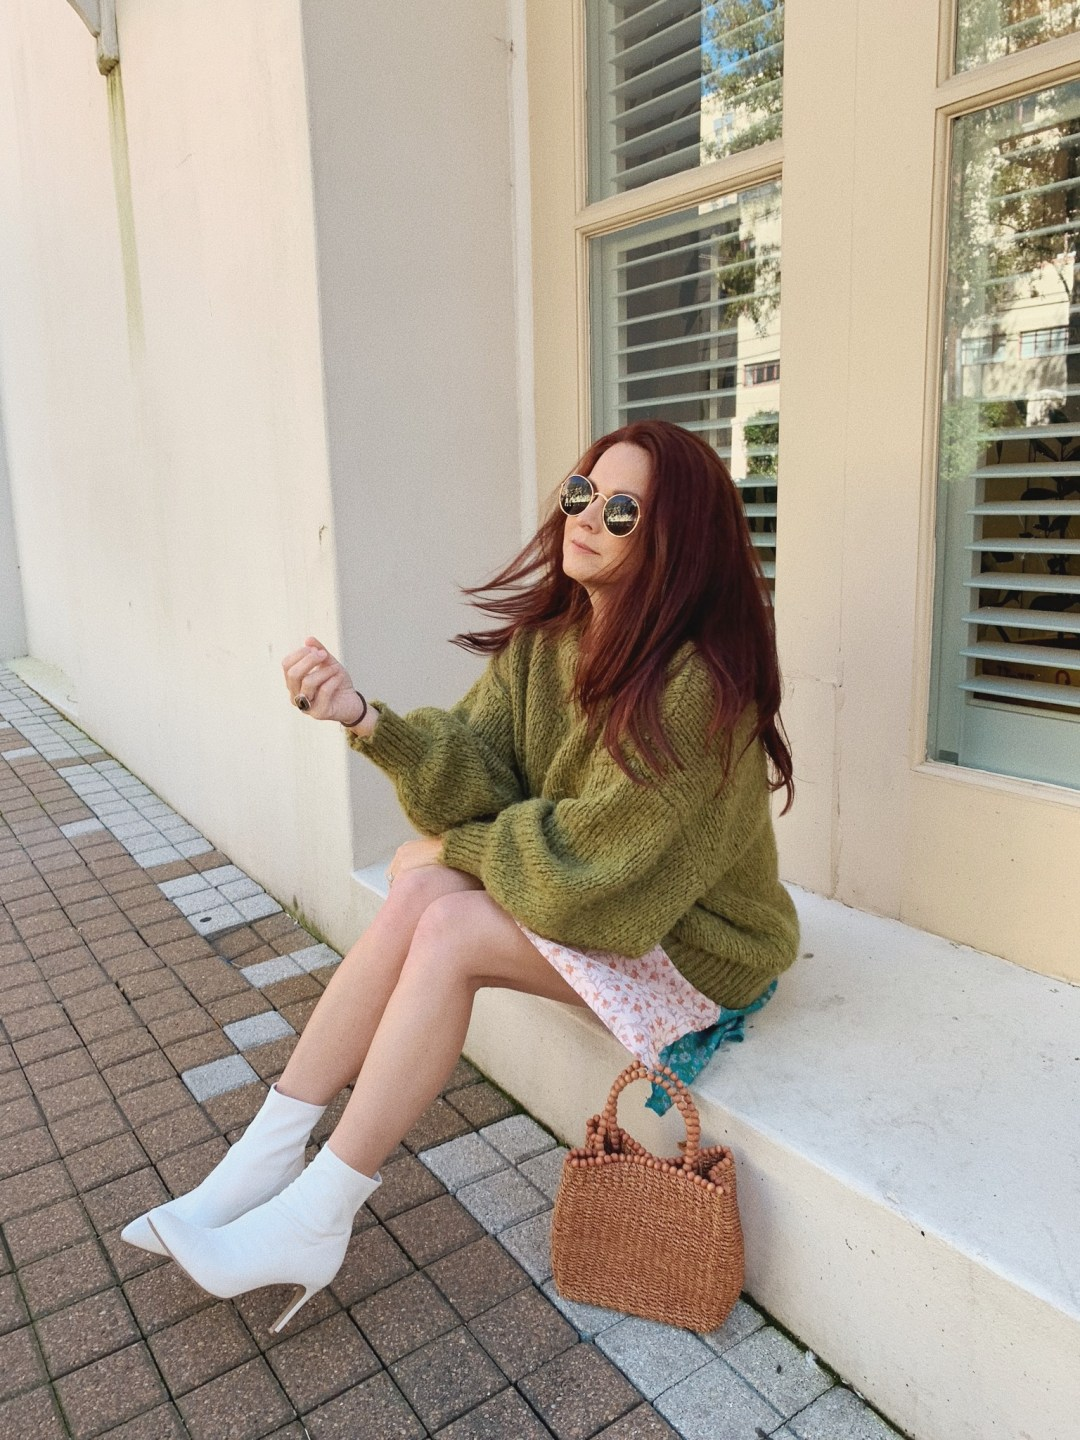 outfit ideas for spring, green sweater outfit inspiration, how to wear white boots, wicker bags